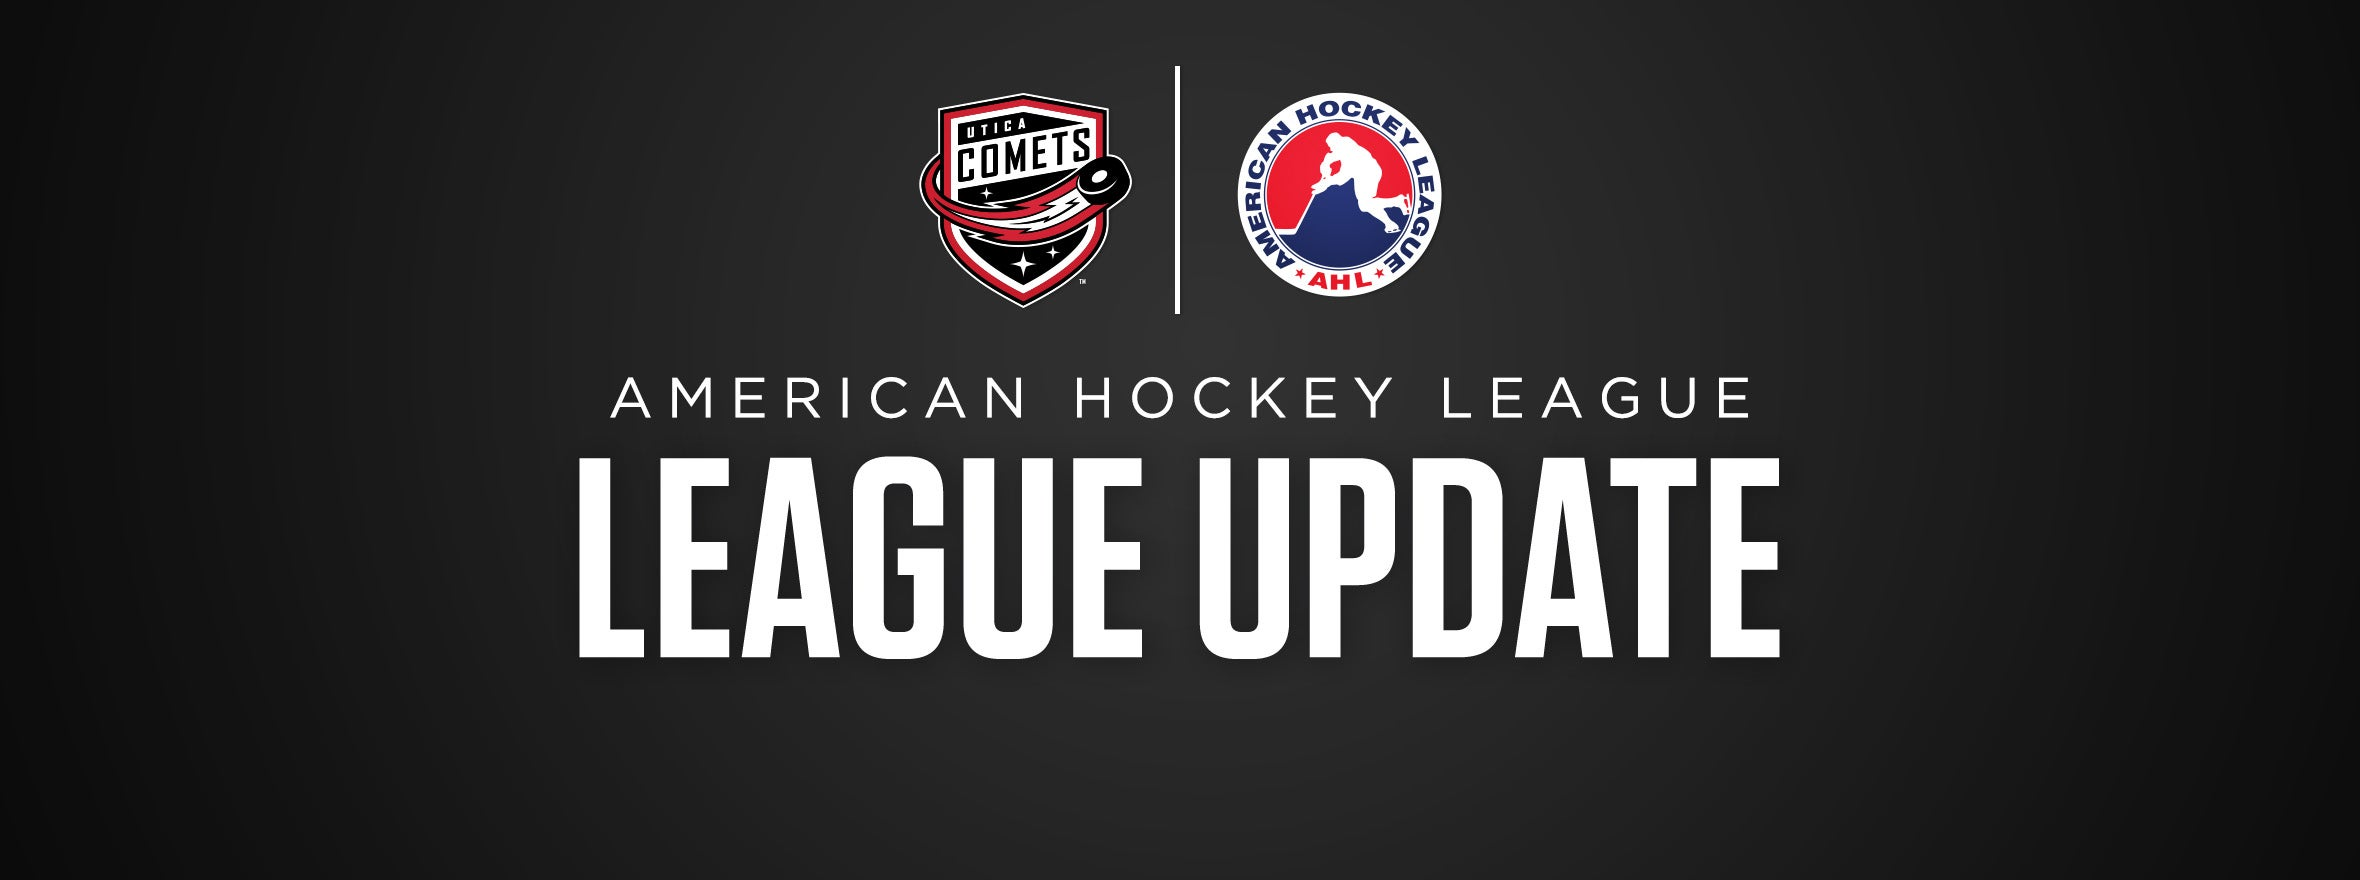 AHL RELEASES LEAGUE UPDATE